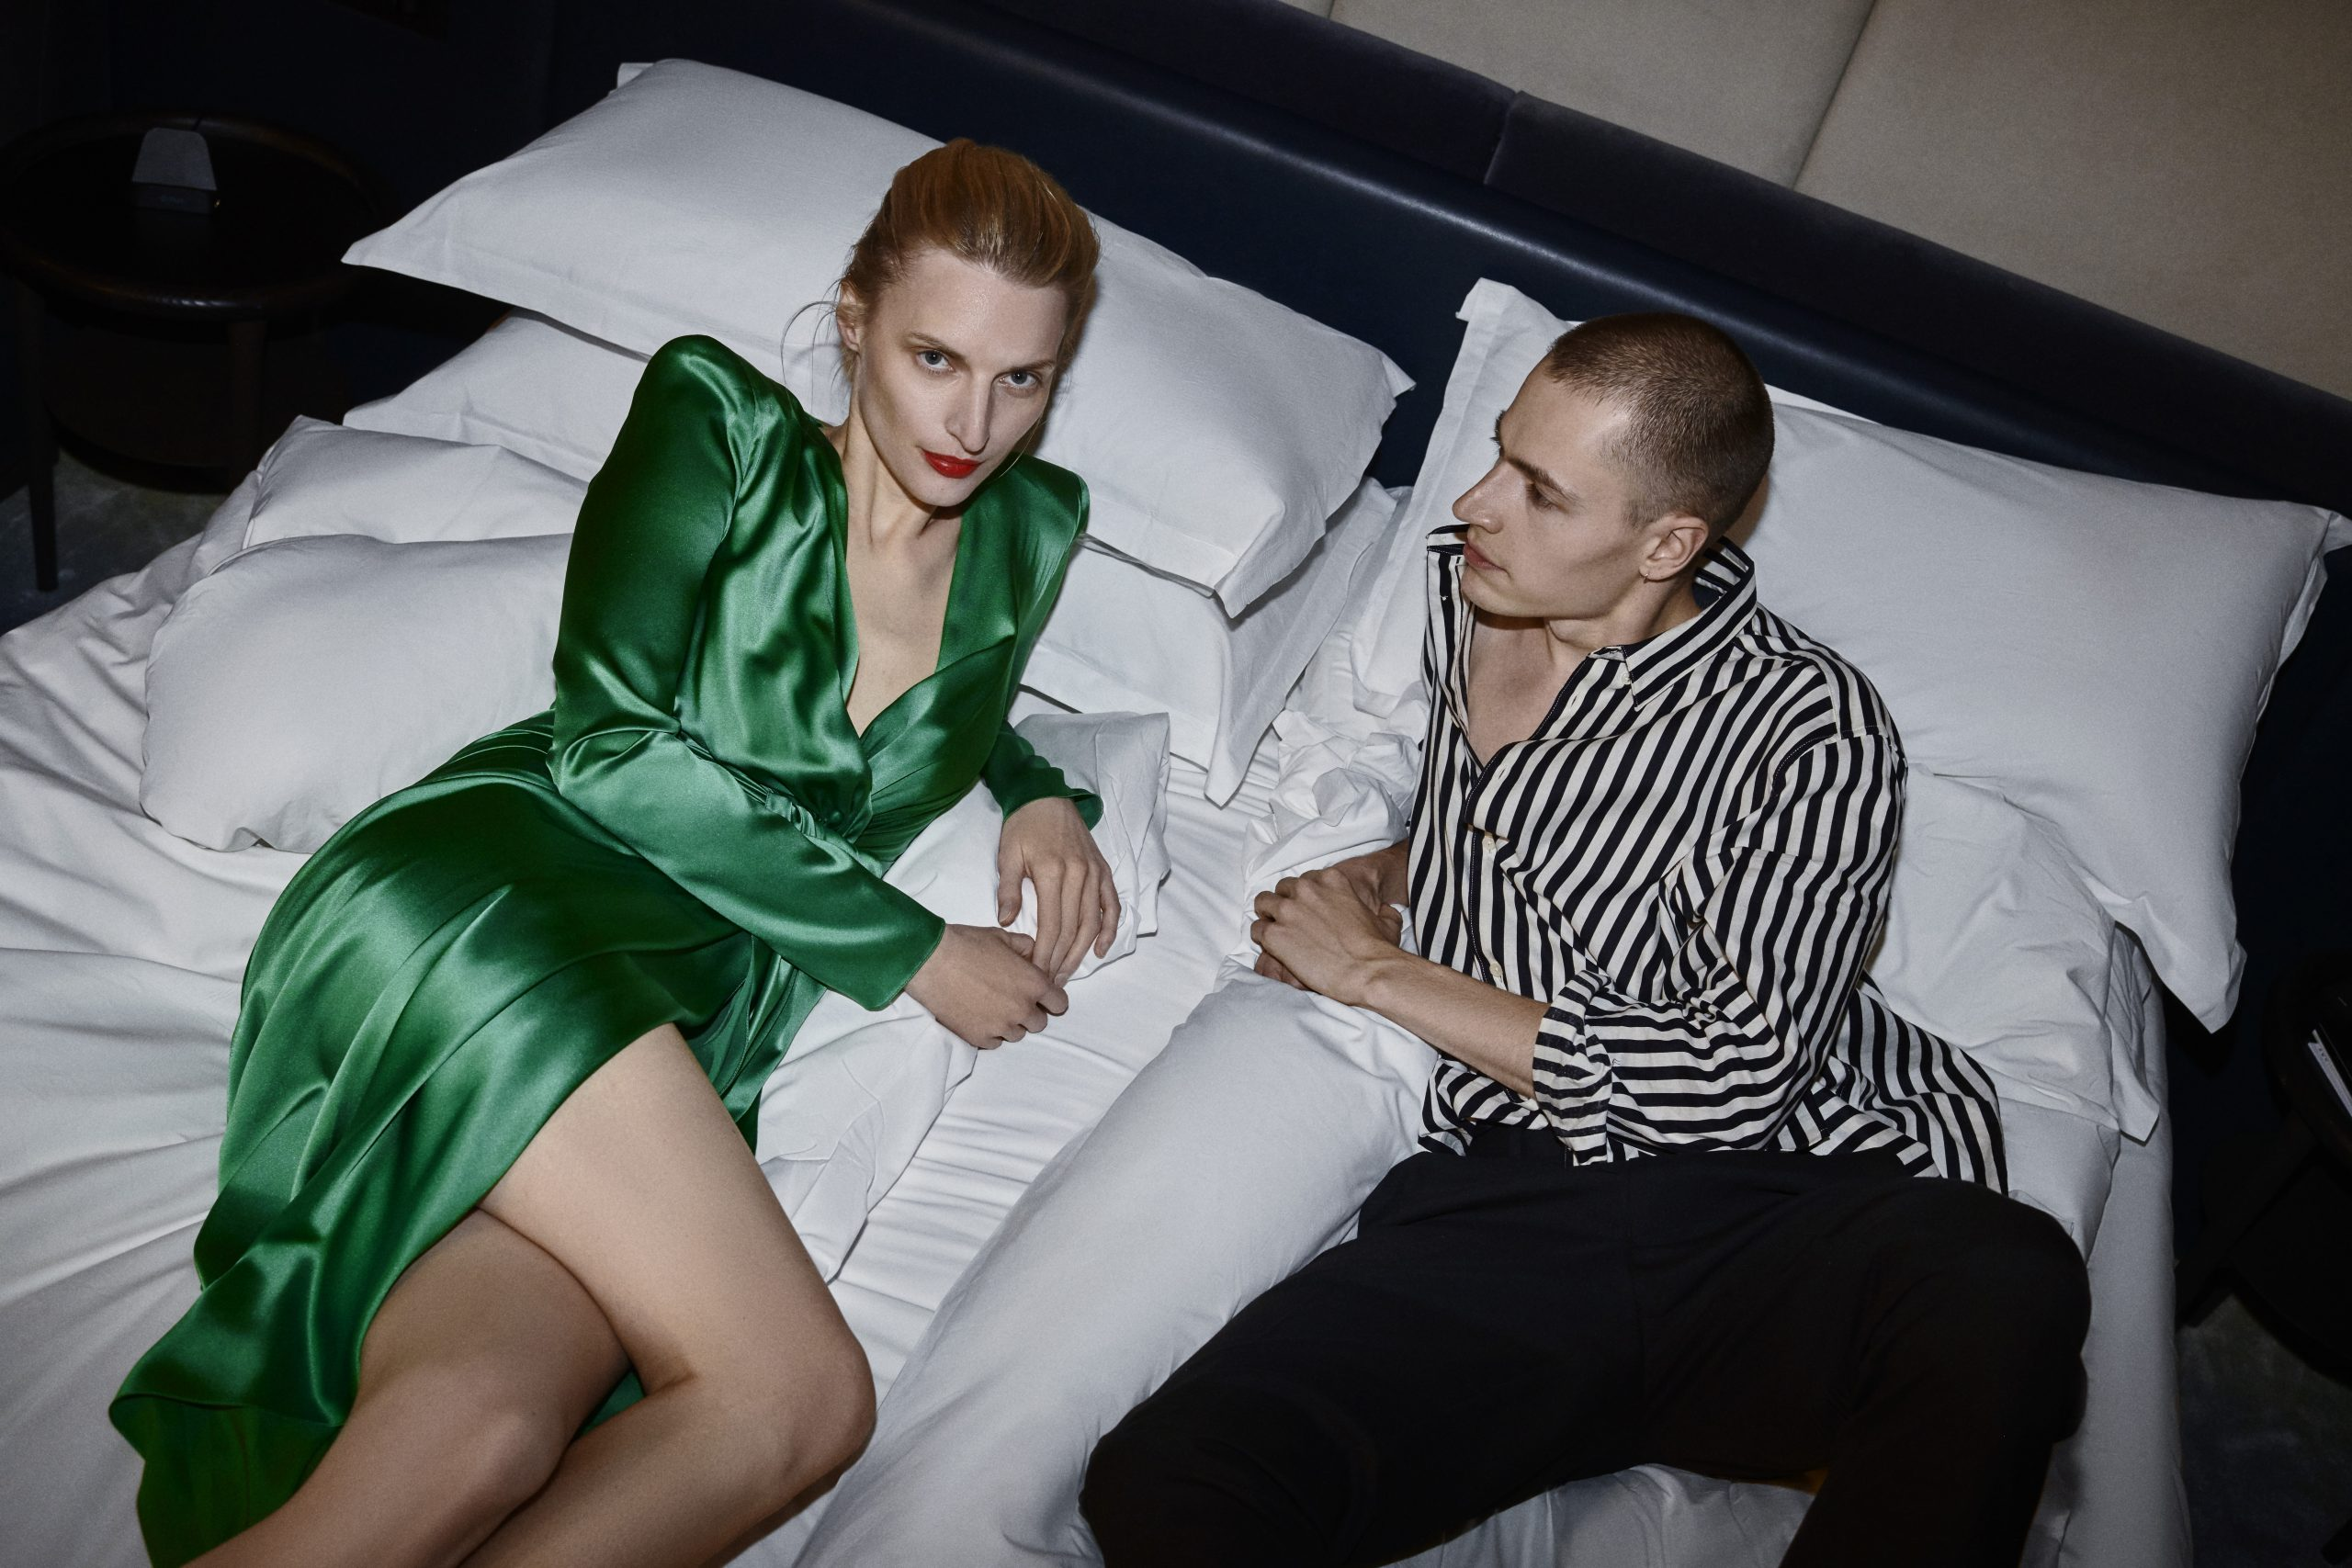 couple in bed wearing fancy outfits after a night out